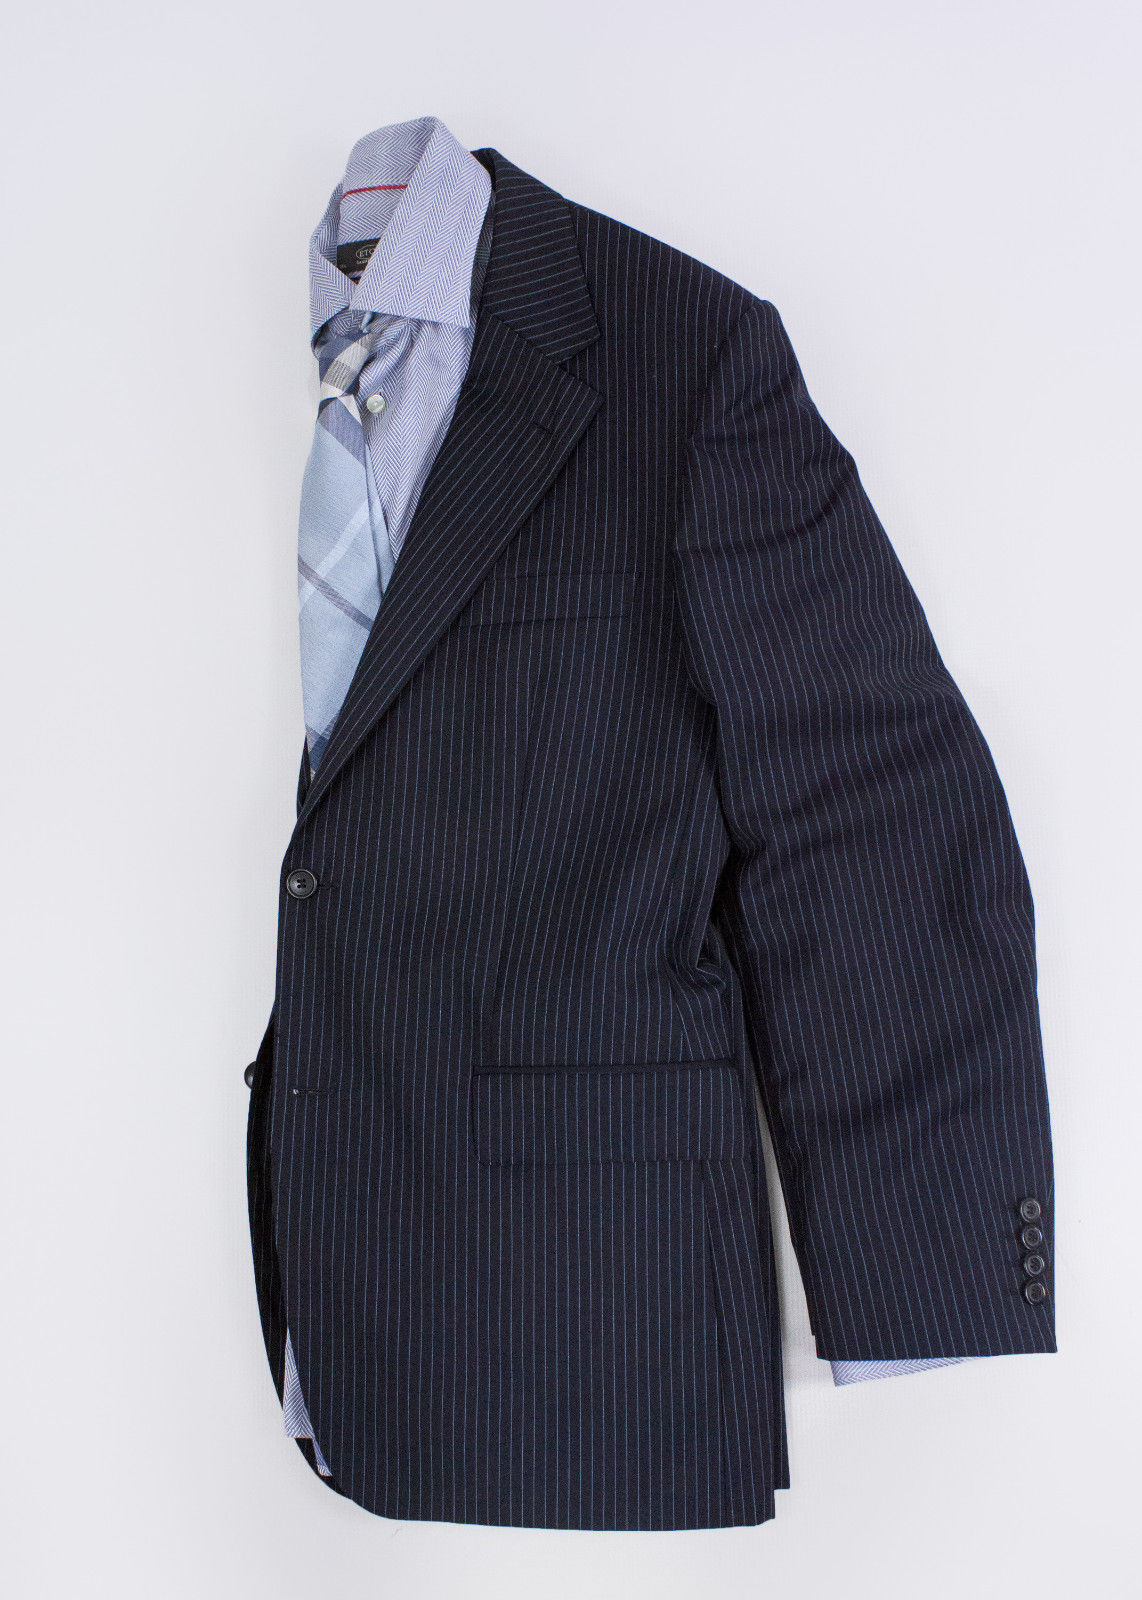 HUGO BOSS Wool Navy Striped Blazer Jacket, EU 50, US 40R - secondfirst